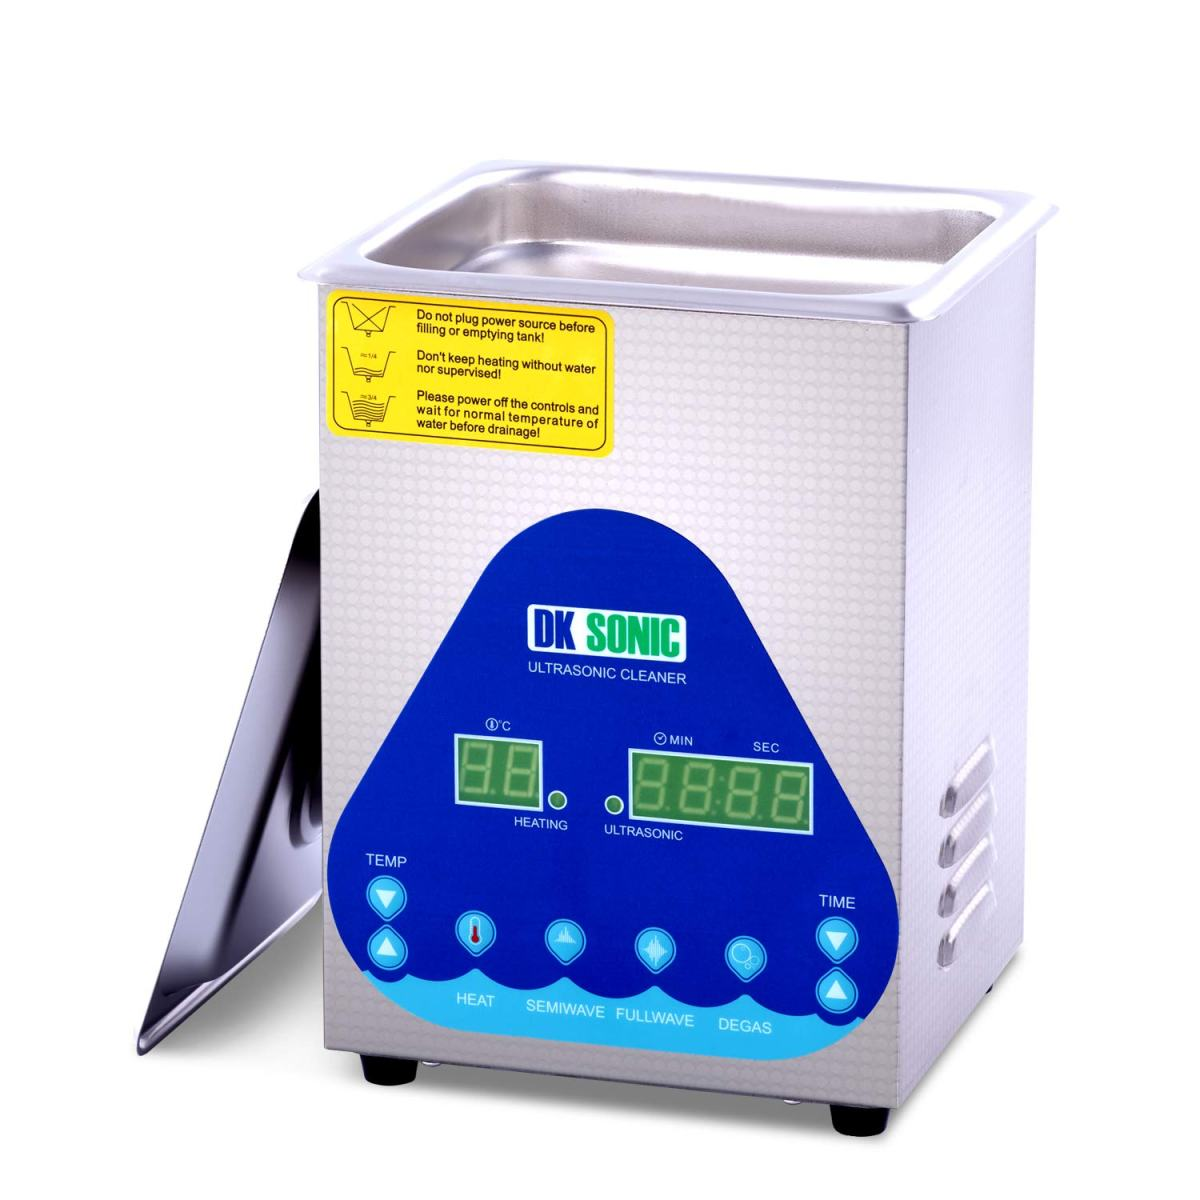 DK-Sonic-ultrasonic-cleaner-adjustable